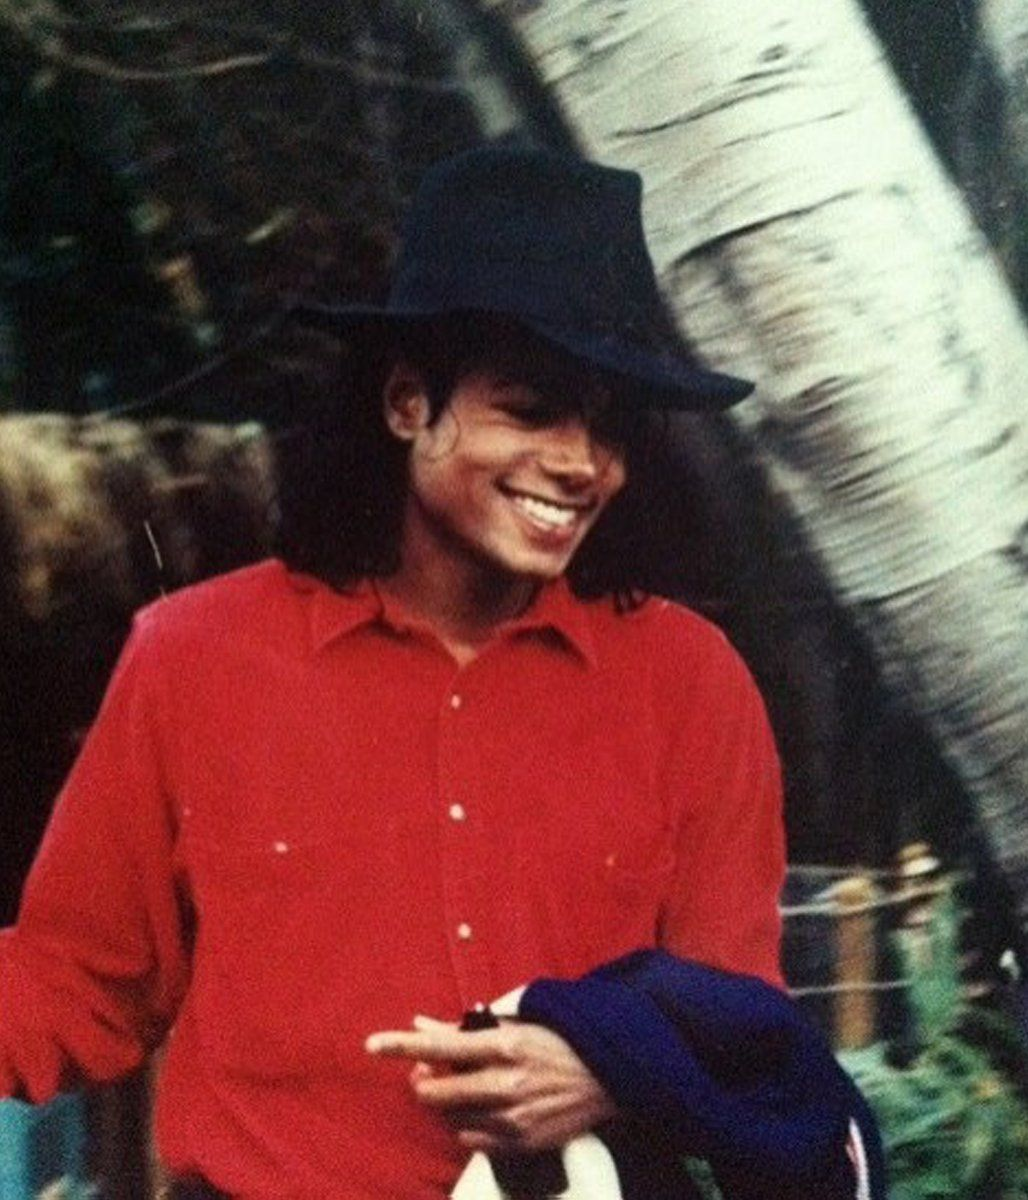 LoveMj on in 2019 | The most beautiful smile in the world